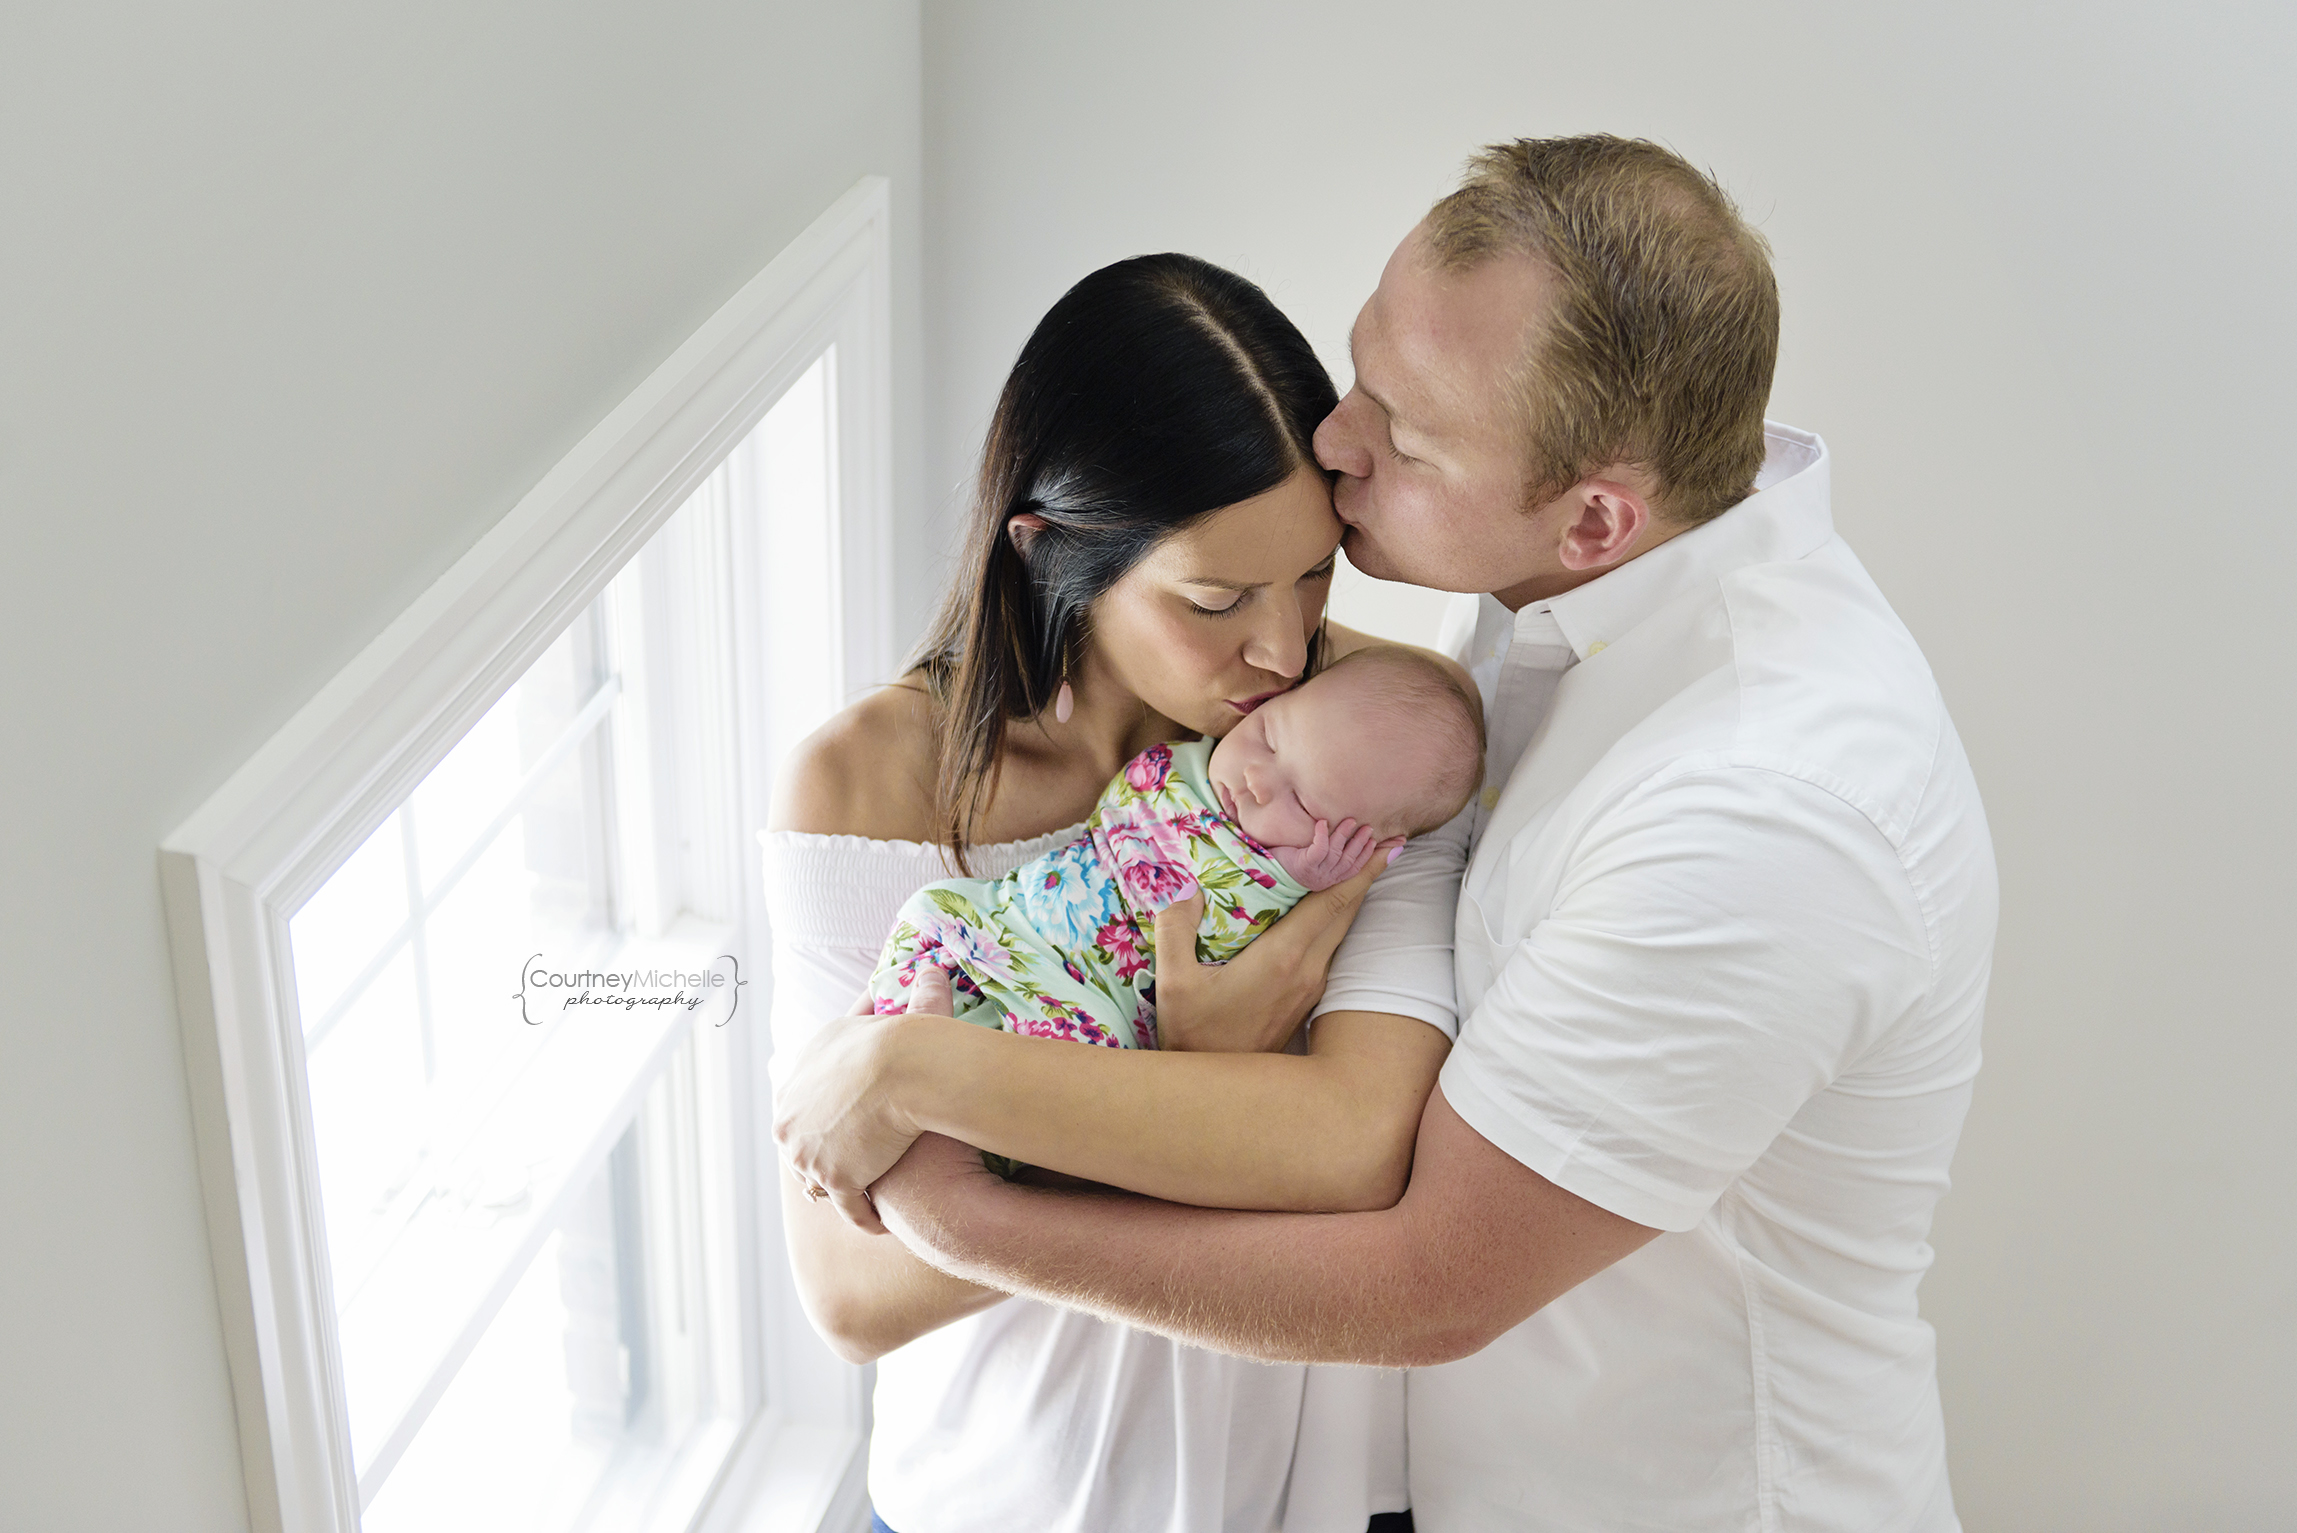 chicago-newborn-photographers-courtney-laper-lifestyle-session-mom-holding-down-syndrome-baby-girl-dad-kissing-mom-COPYRIGHTCMP-Camille20190705-2749-50.jpg